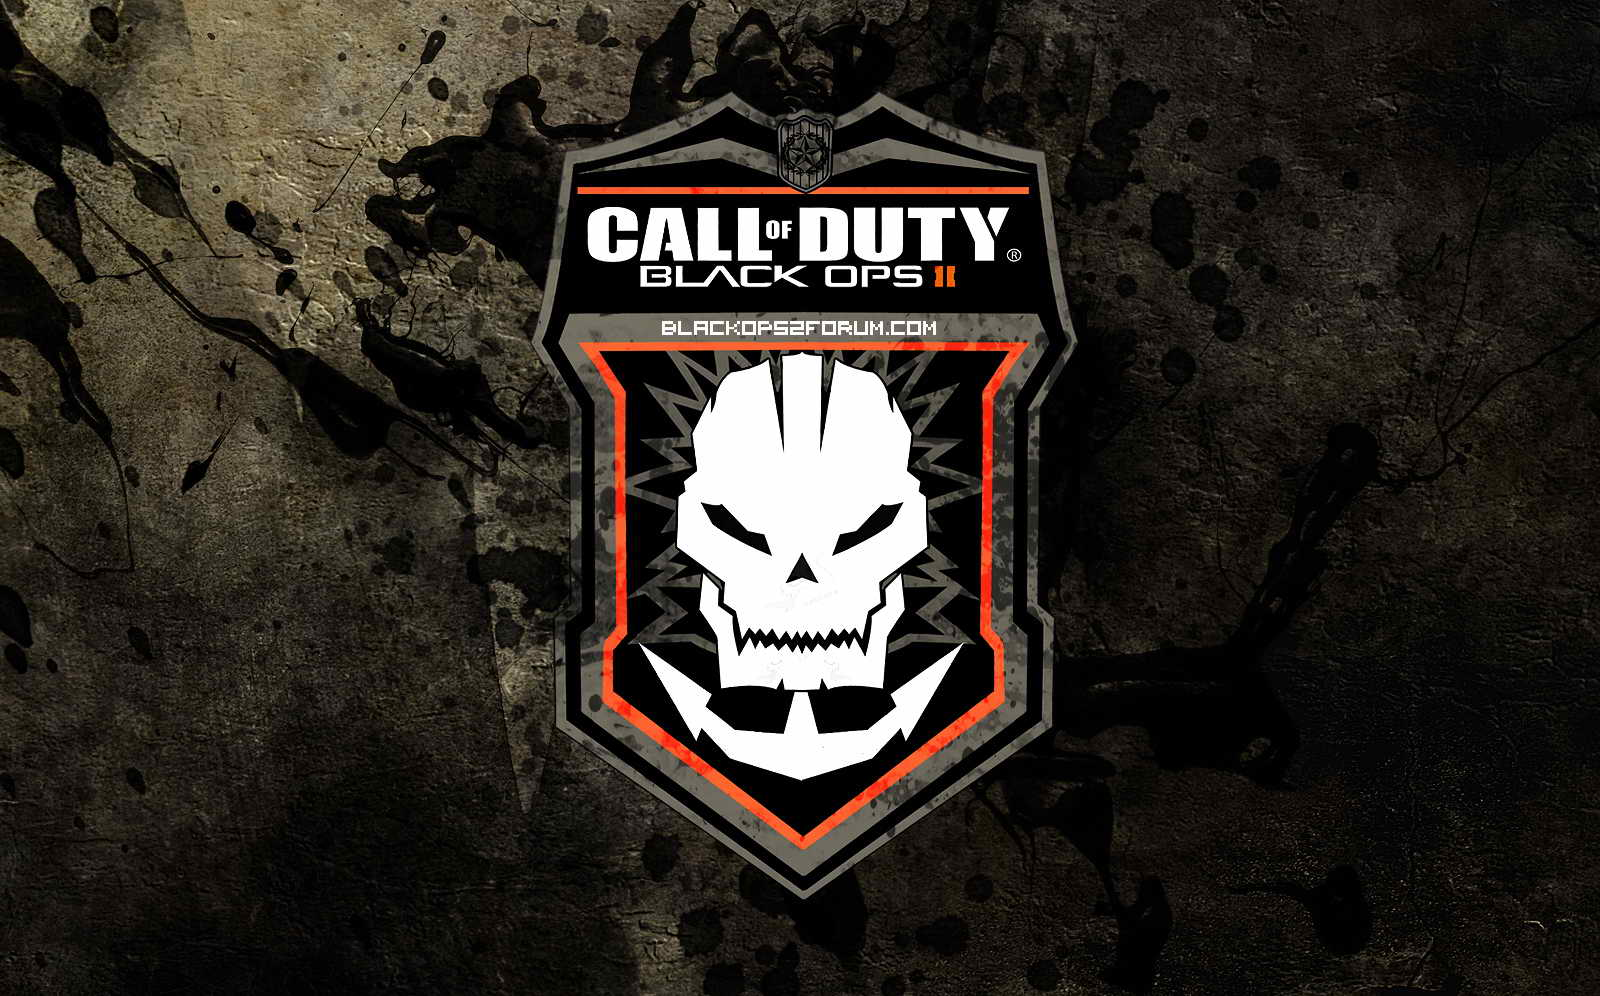 download free call of duty wallpapers hd call of duty logo wallpaper call of duty logo information